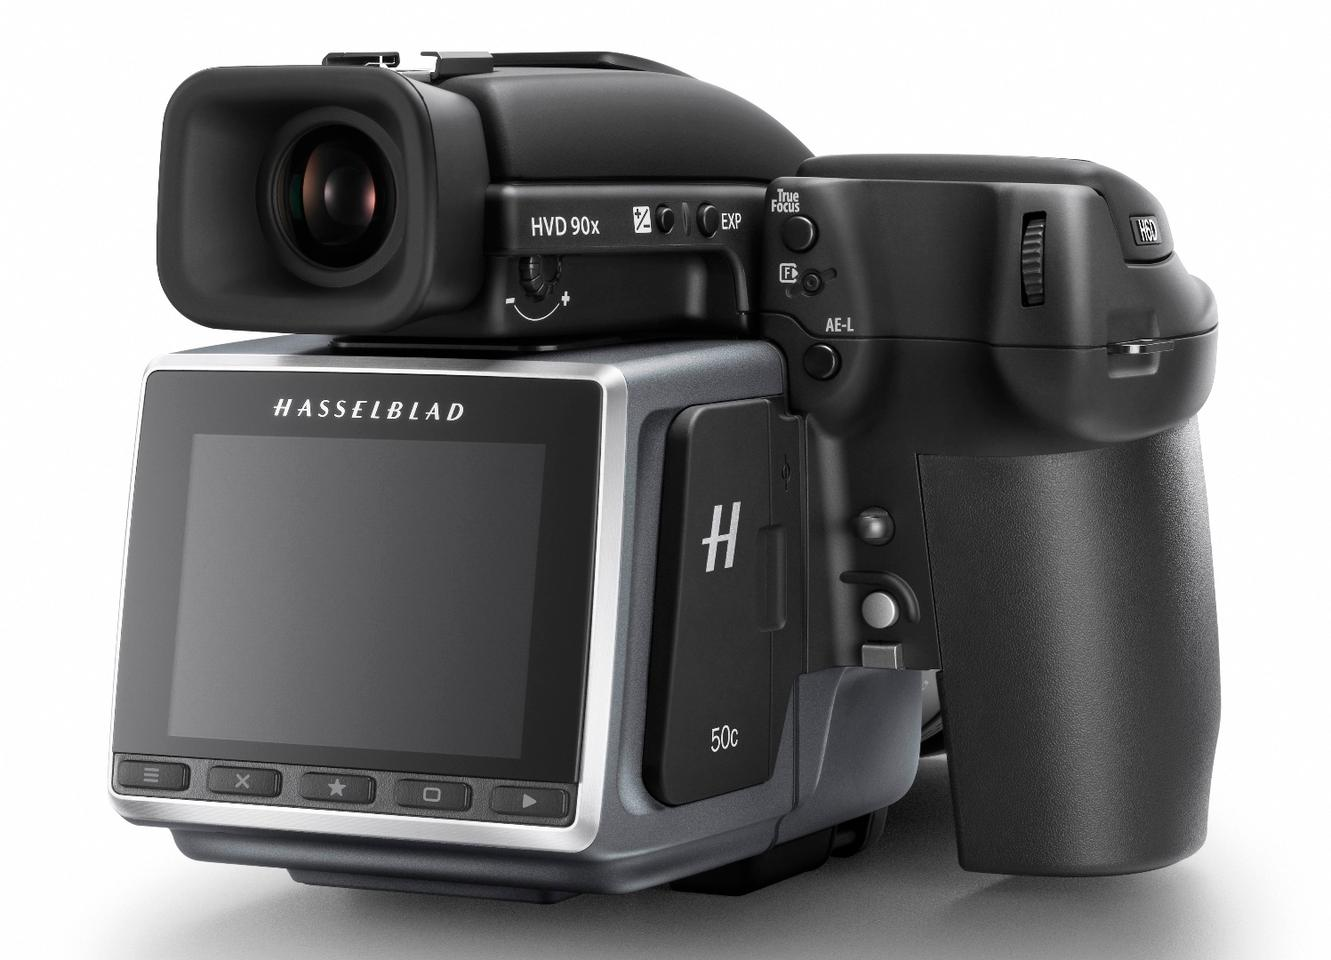 The Hasselblad H6D-50c has a shooting rate of up to 2.5 fps